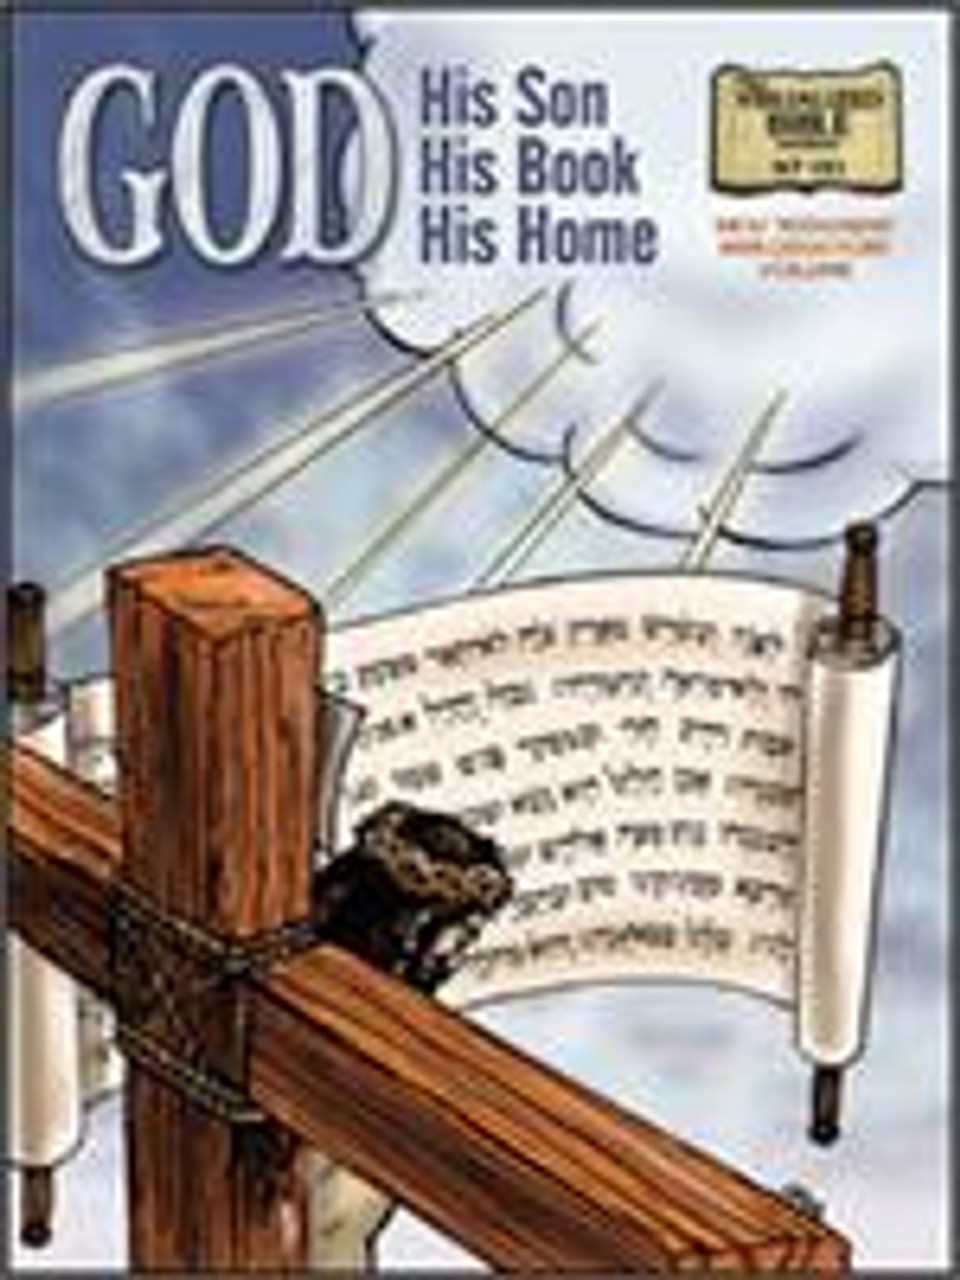 God: His Son, His Book, His Home (visuals w/text)